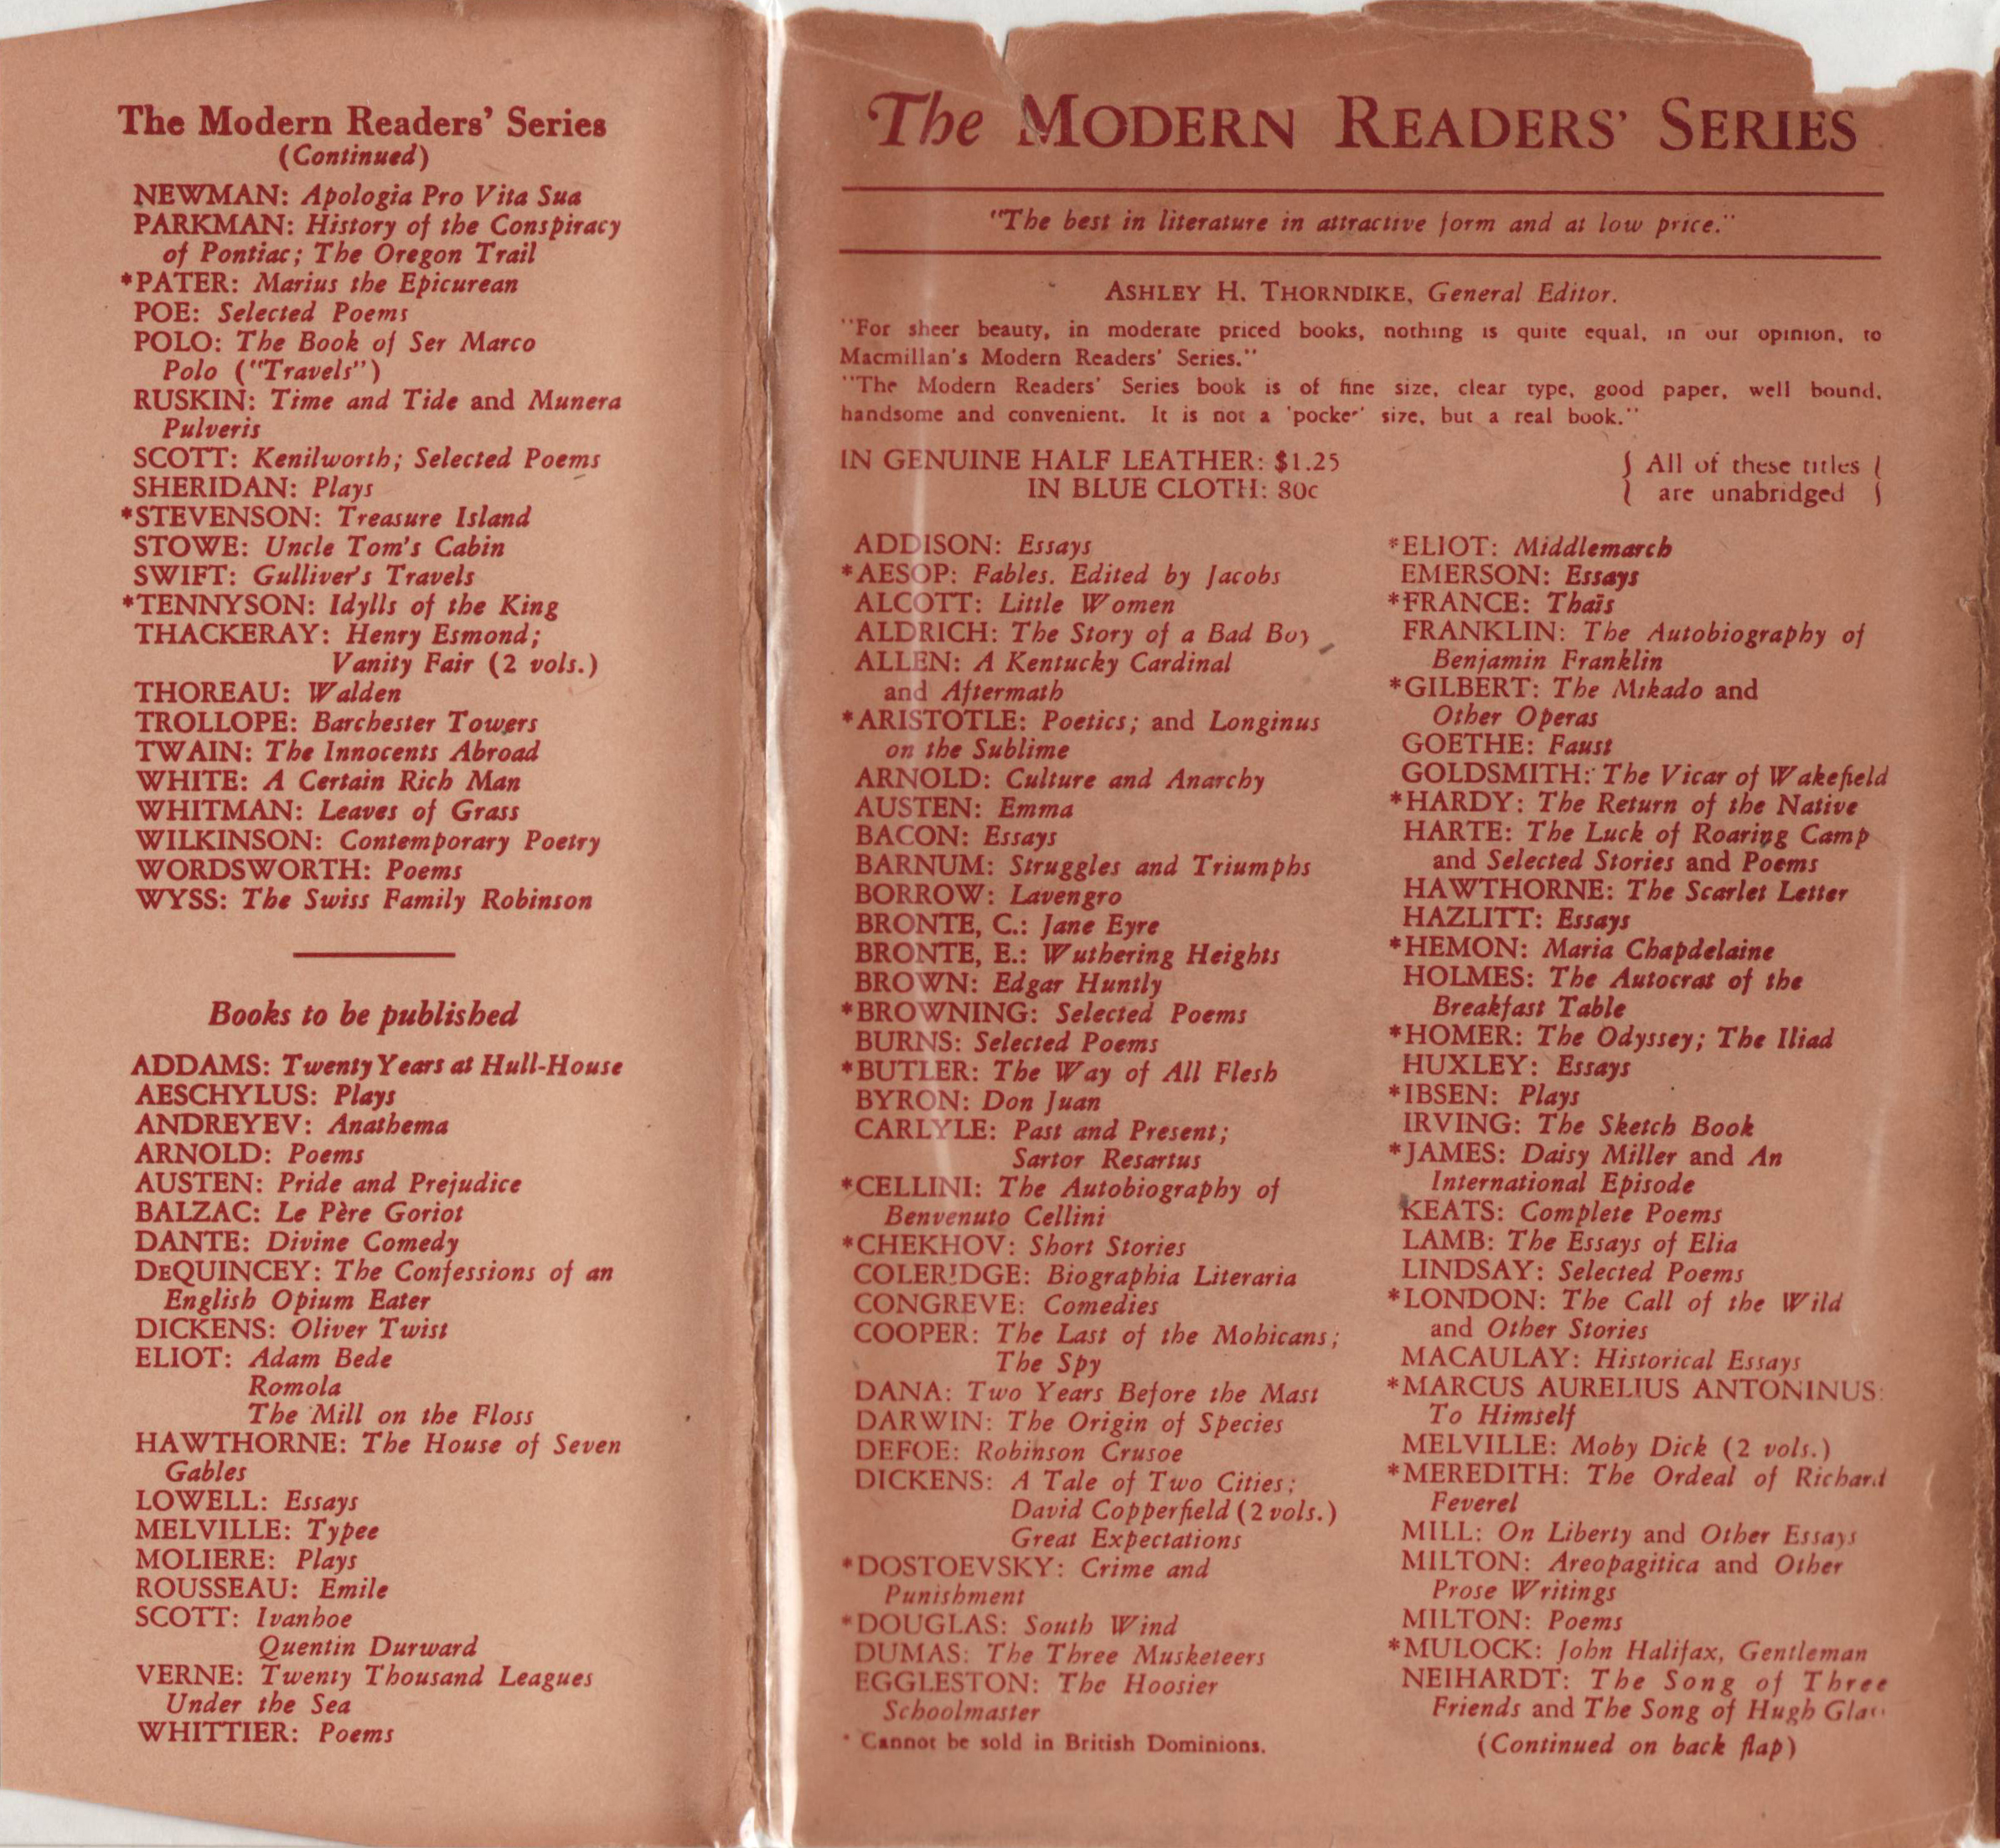 modern readers series a series of series in 1928 certain titles were issued in a new larger format a different jacket and binding design this is sometimes referred to as the new modern